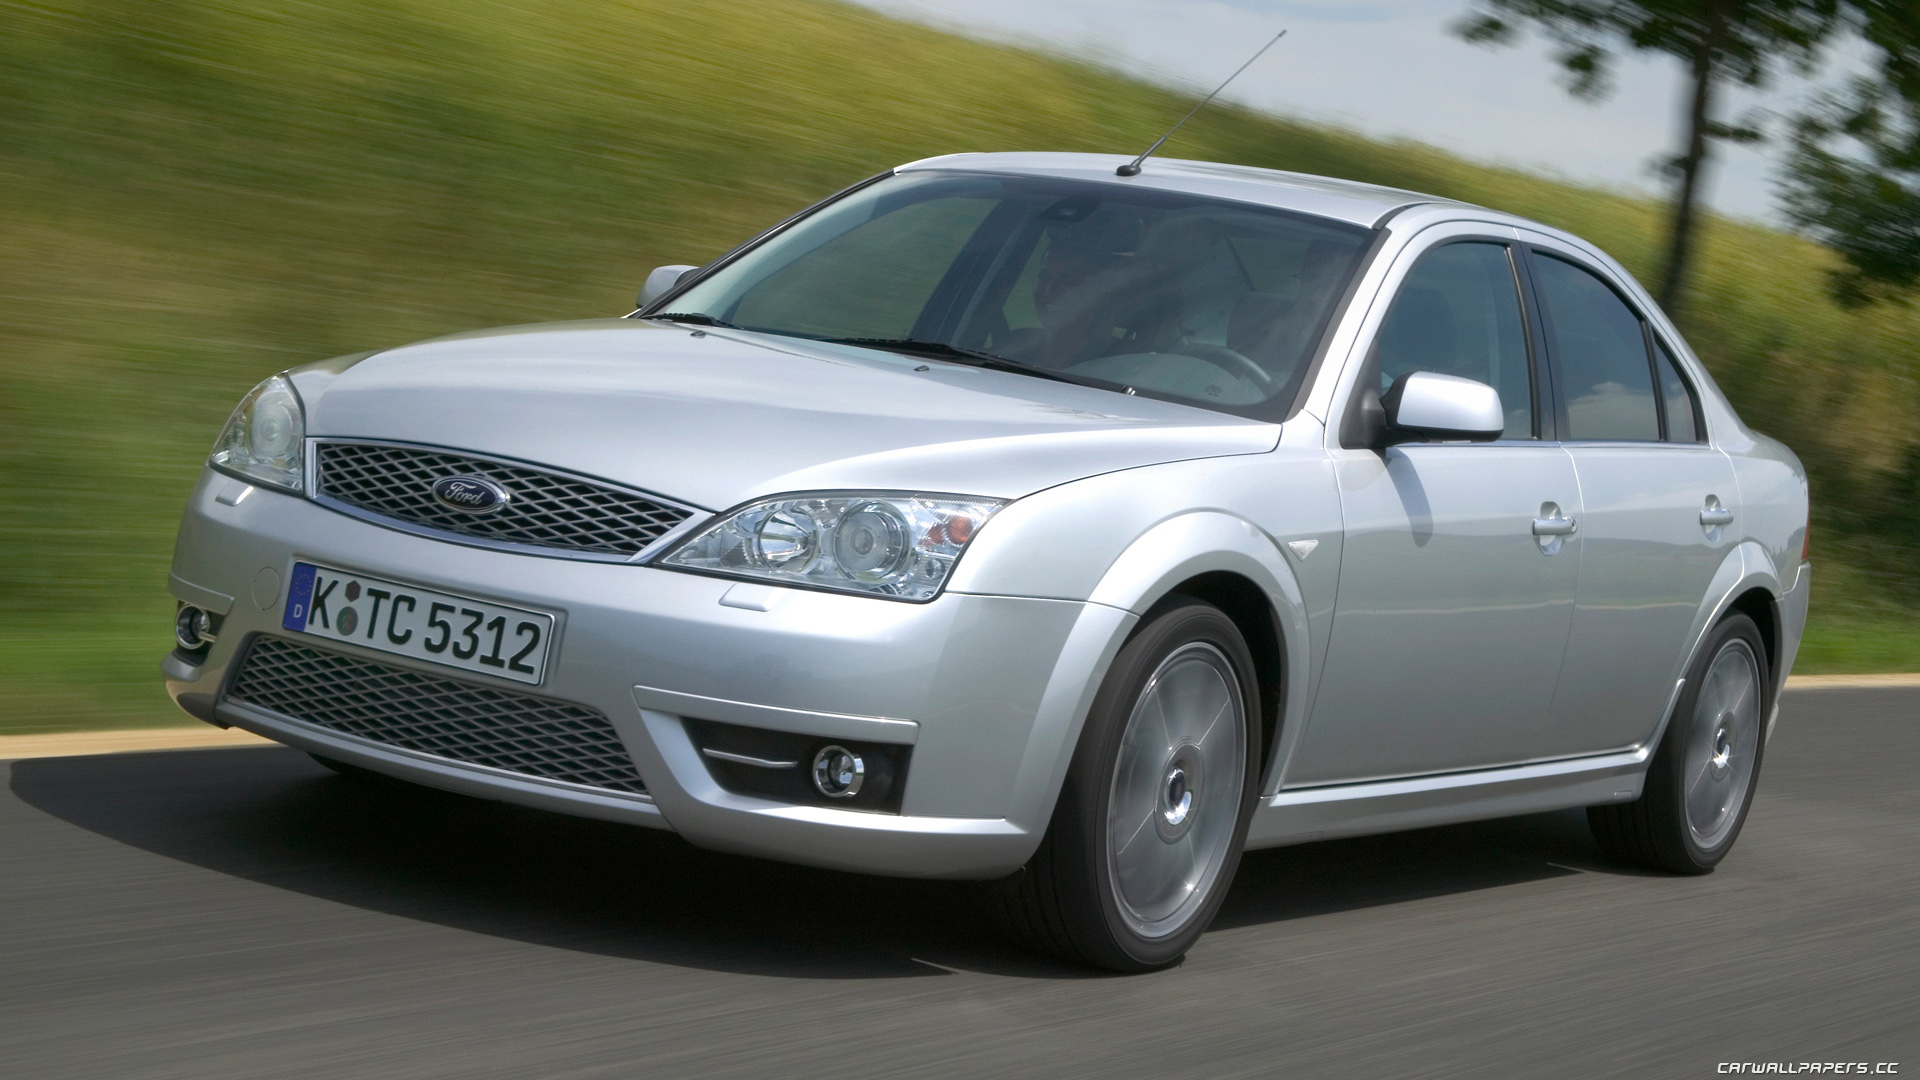 2006 Ford Mondeo #18